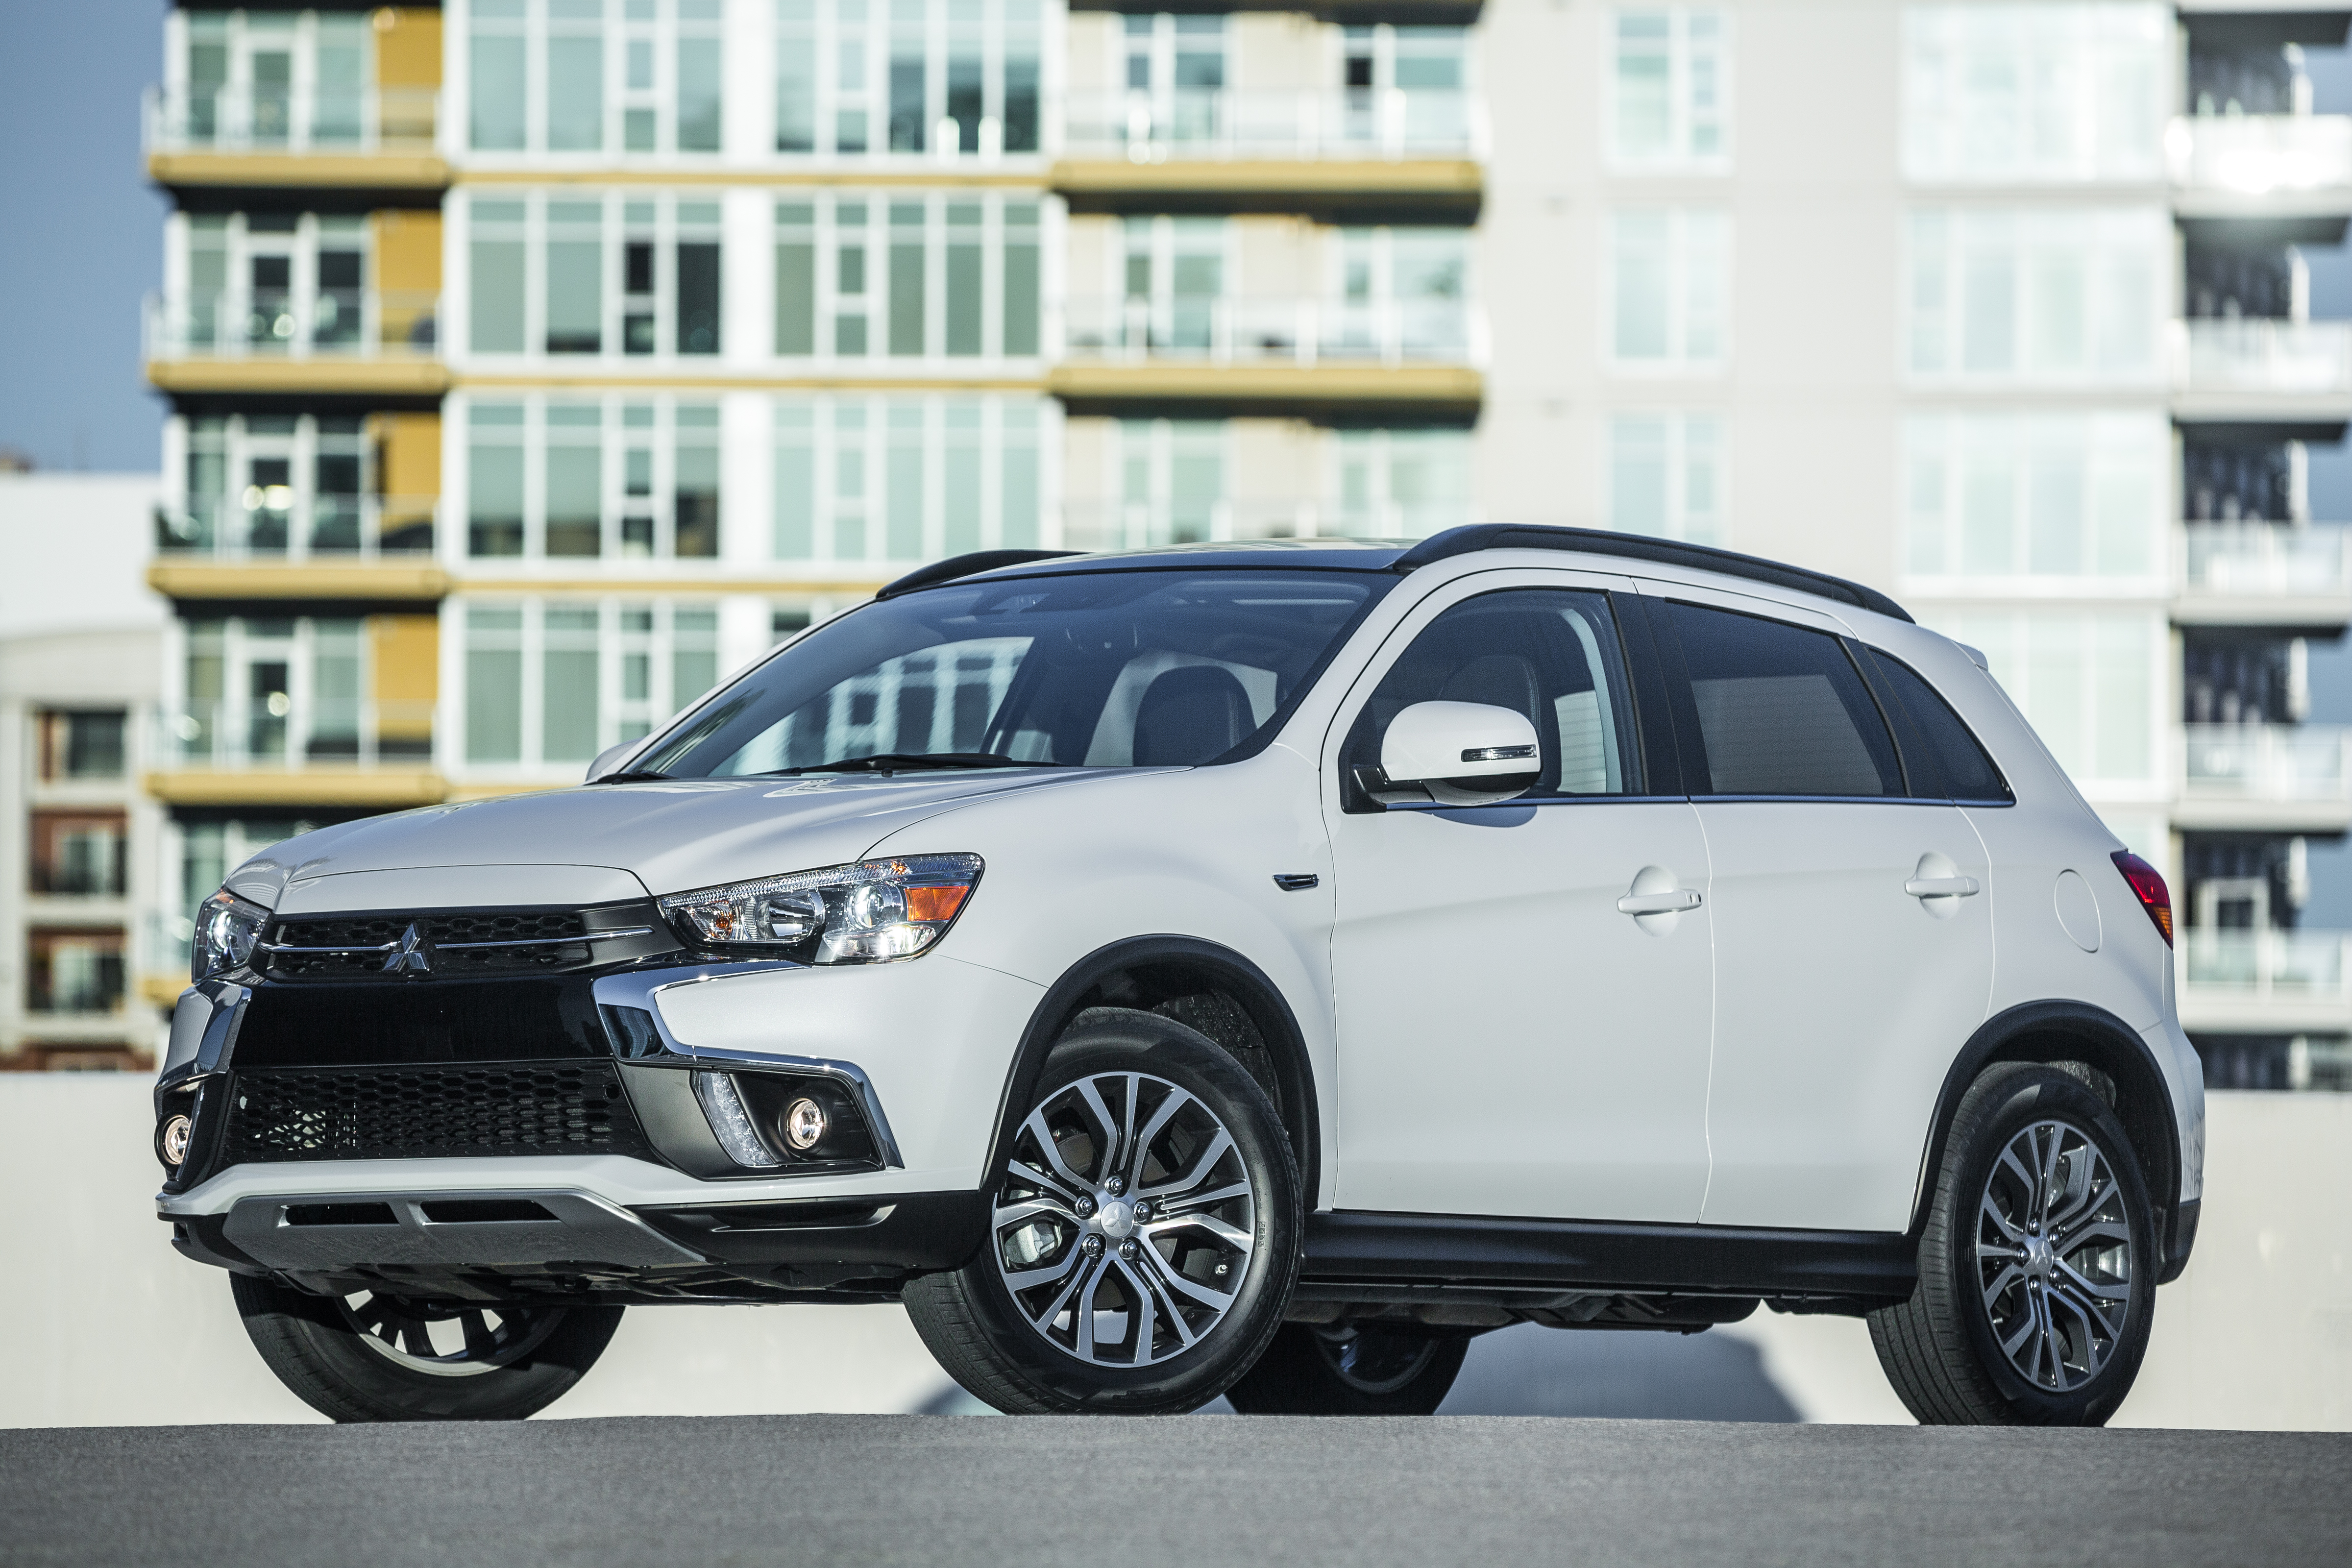 2018 Outlander Sport (Photo: Business Wire)